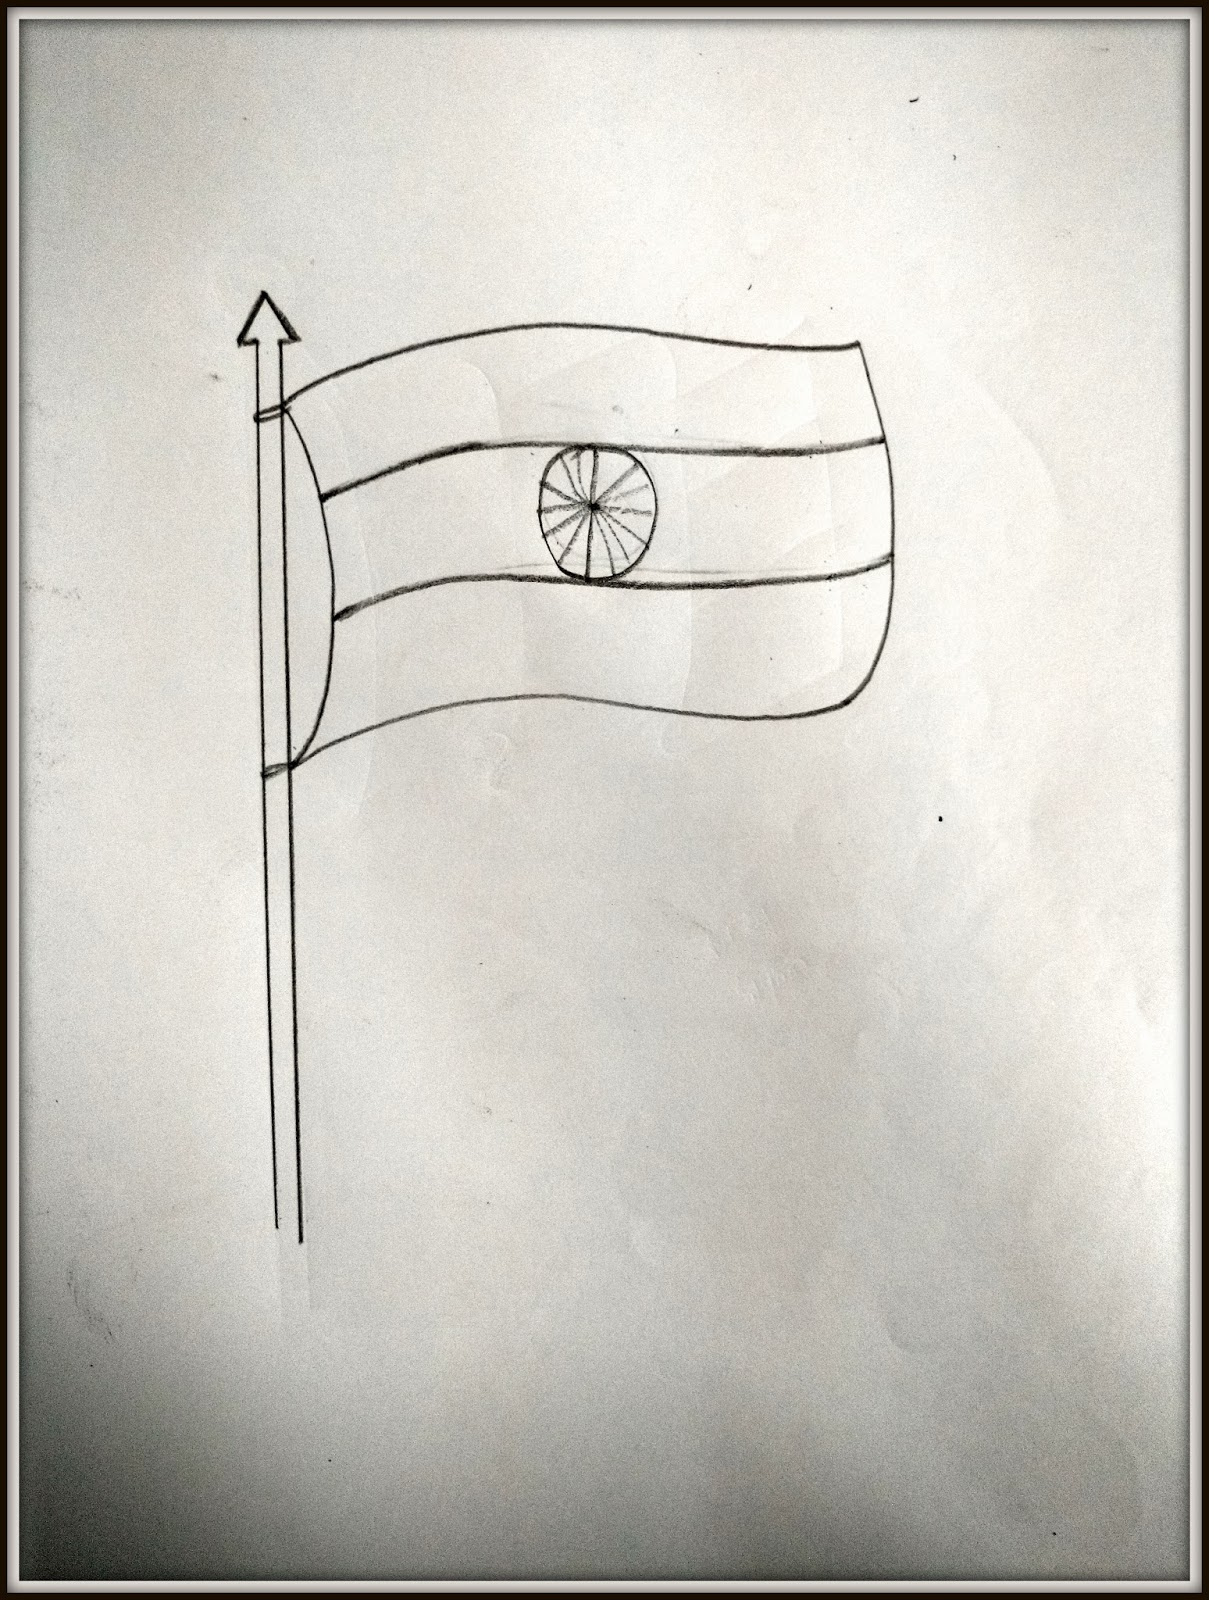 republic day 2017 how to draw a flag proart by satyam